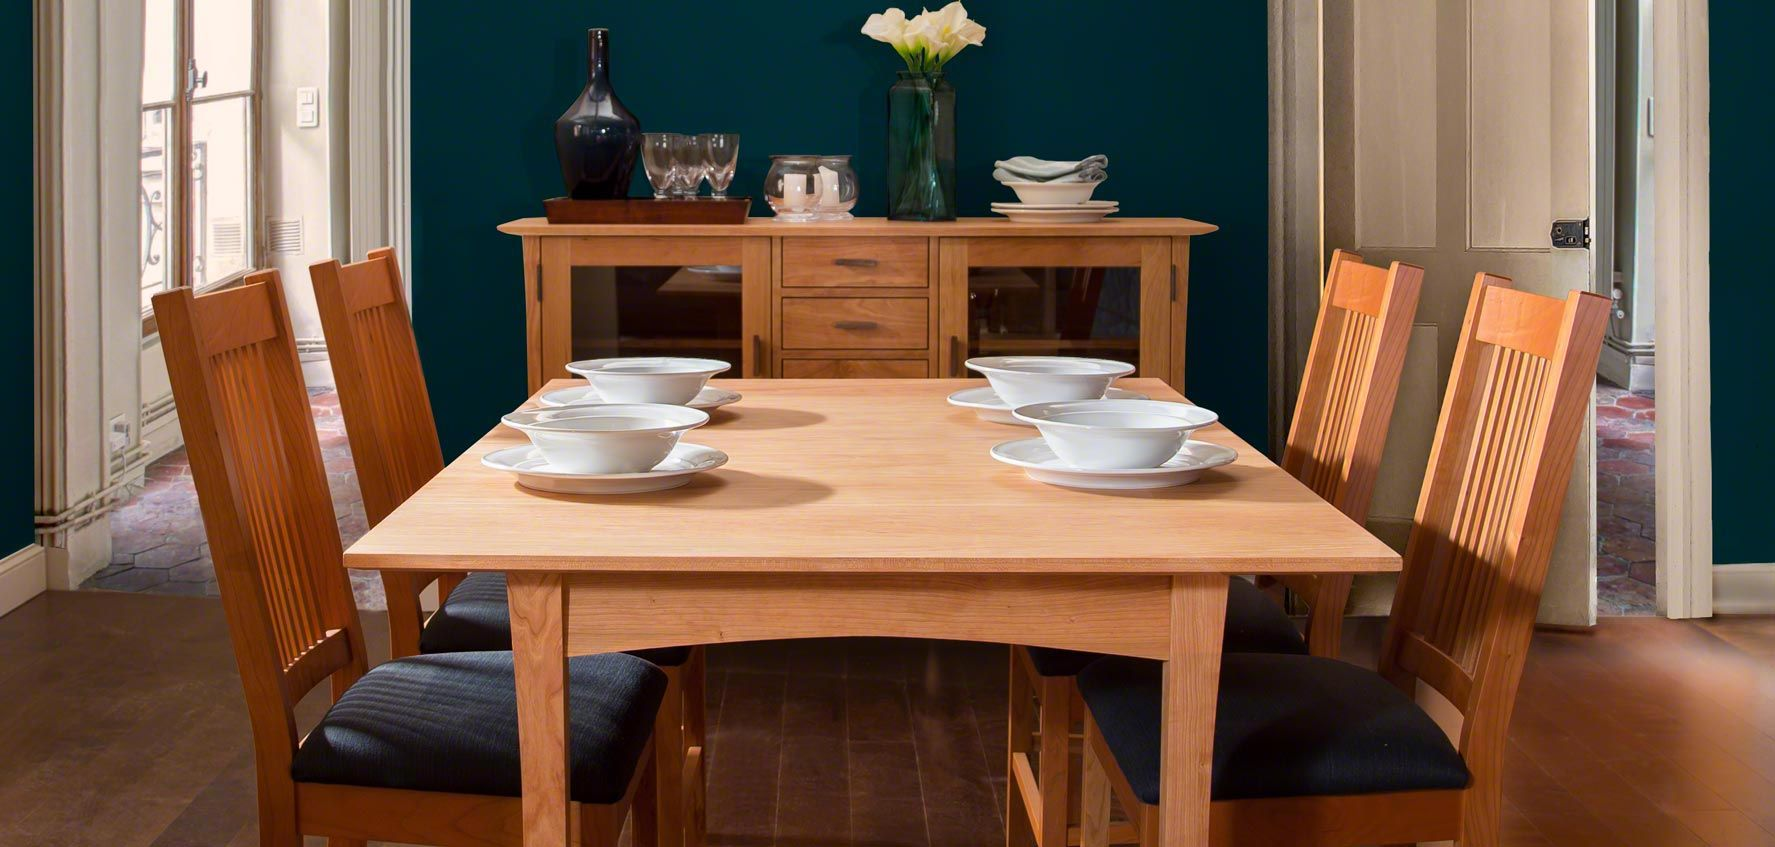 9 Wood Mission Dining Chair In Dining Room Design Ideas Wood